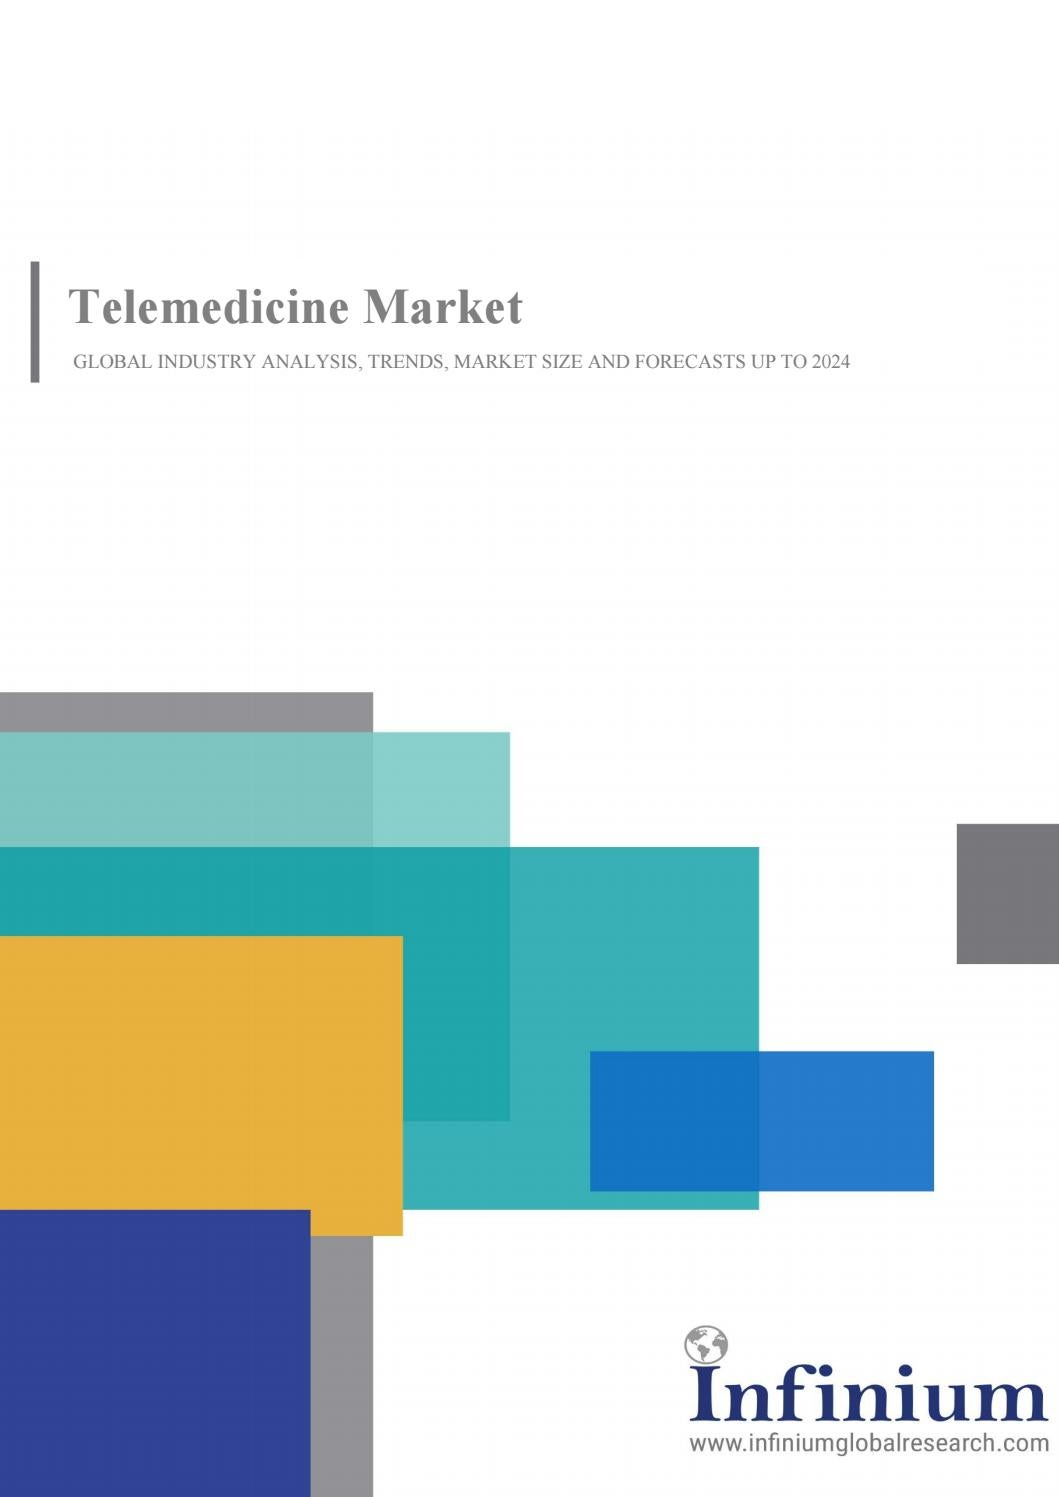 Telemedicine Market Sales Industry Research Report 2024 by